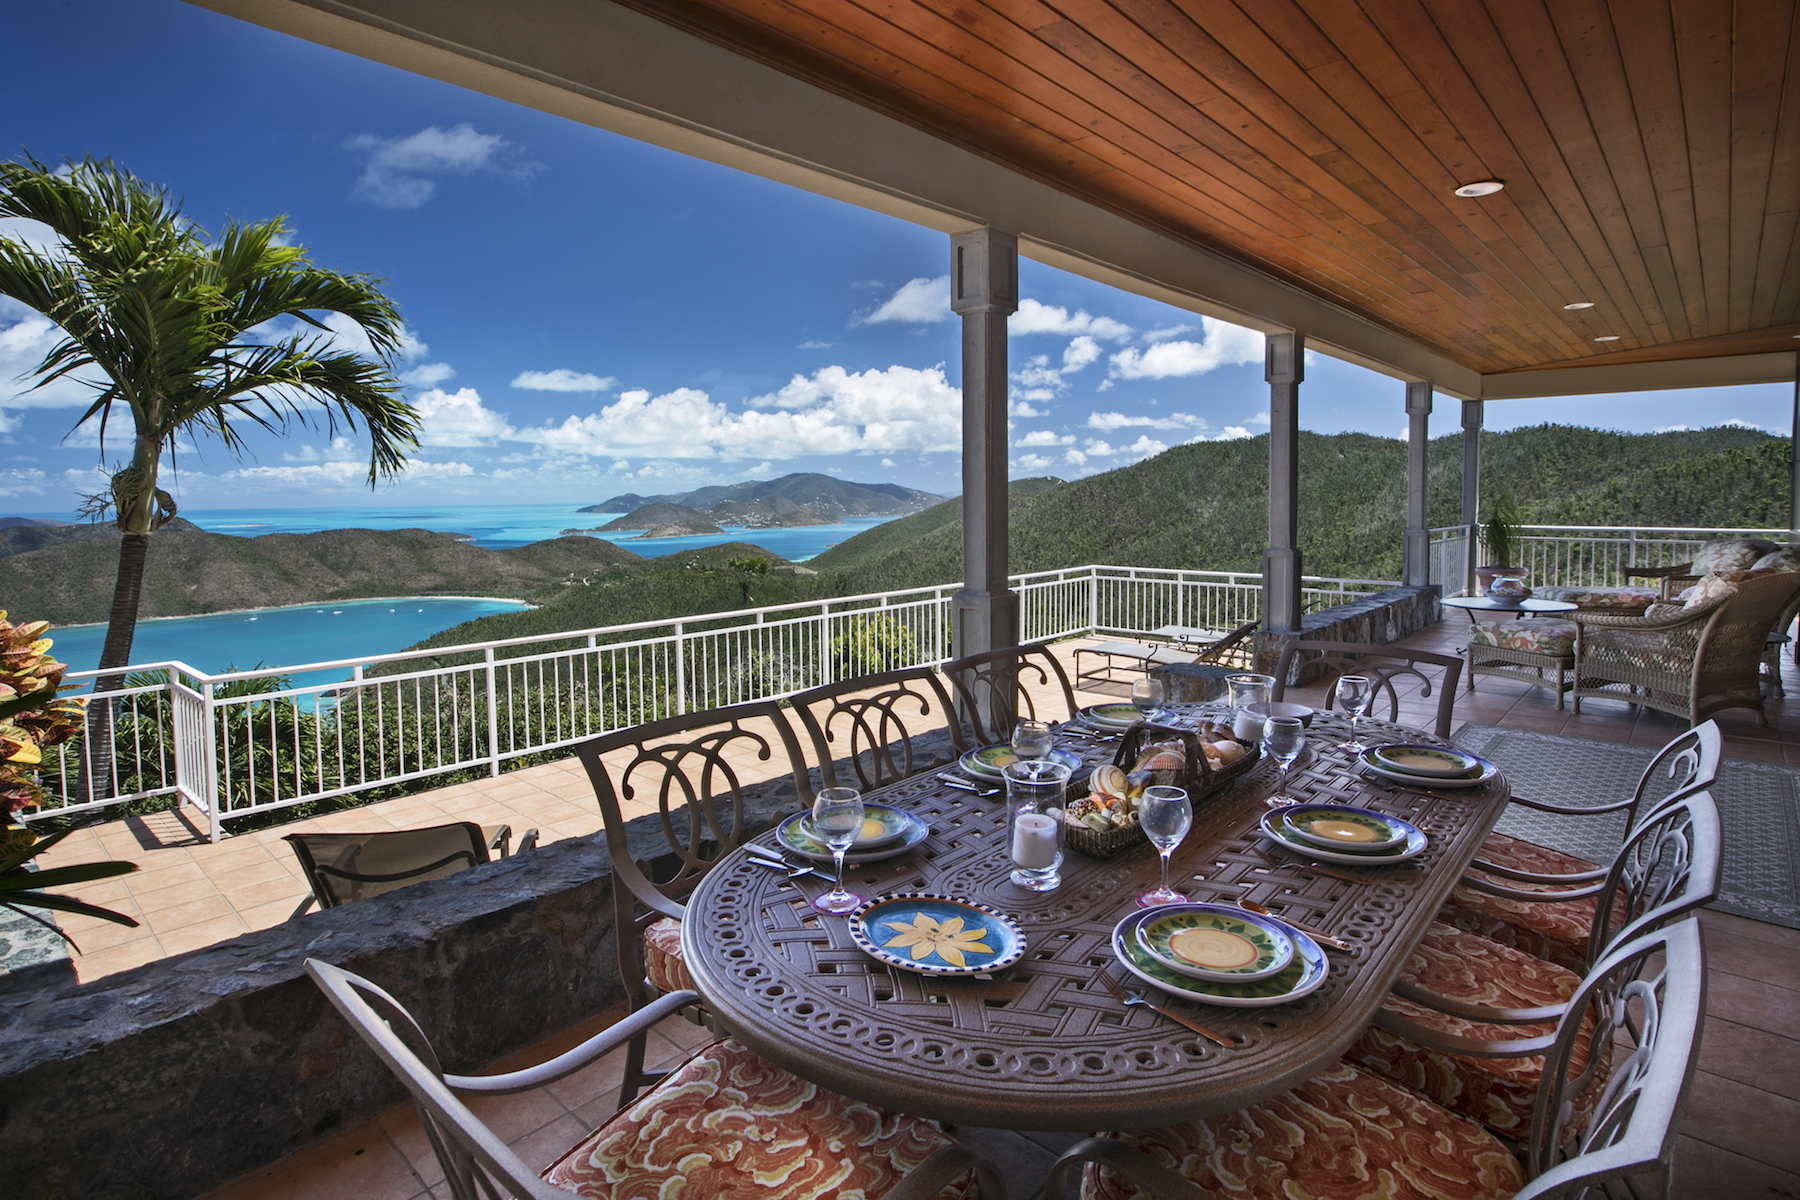 Single Family Home for Sale at Island Sun 3-5 Catherineberg St John, Virgin Islands 00830 United States Virgin Islands